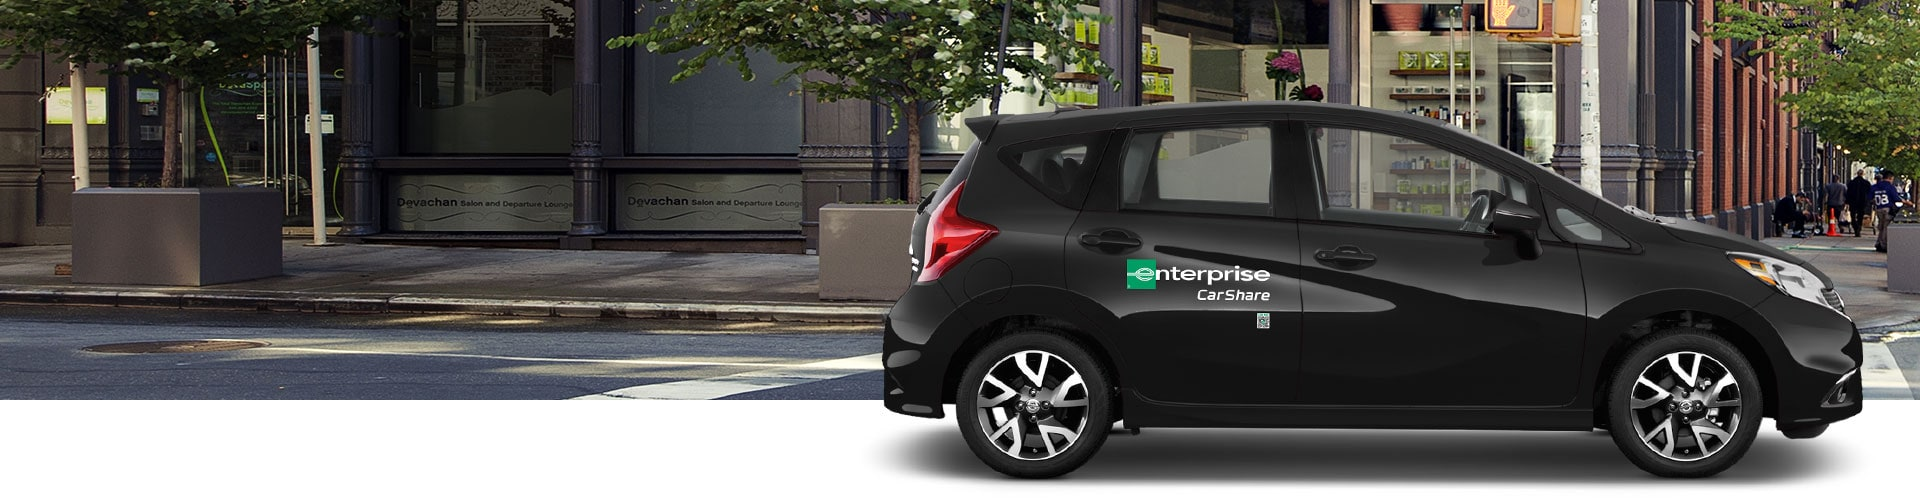 North York Car REntal. Check rates and reserve your next car rental from Enterprise Rent-A-Car in Canada. Rental car classes include economy, fullsize, luxury, minivans, SUVs, pickup trucks, cargo vans .